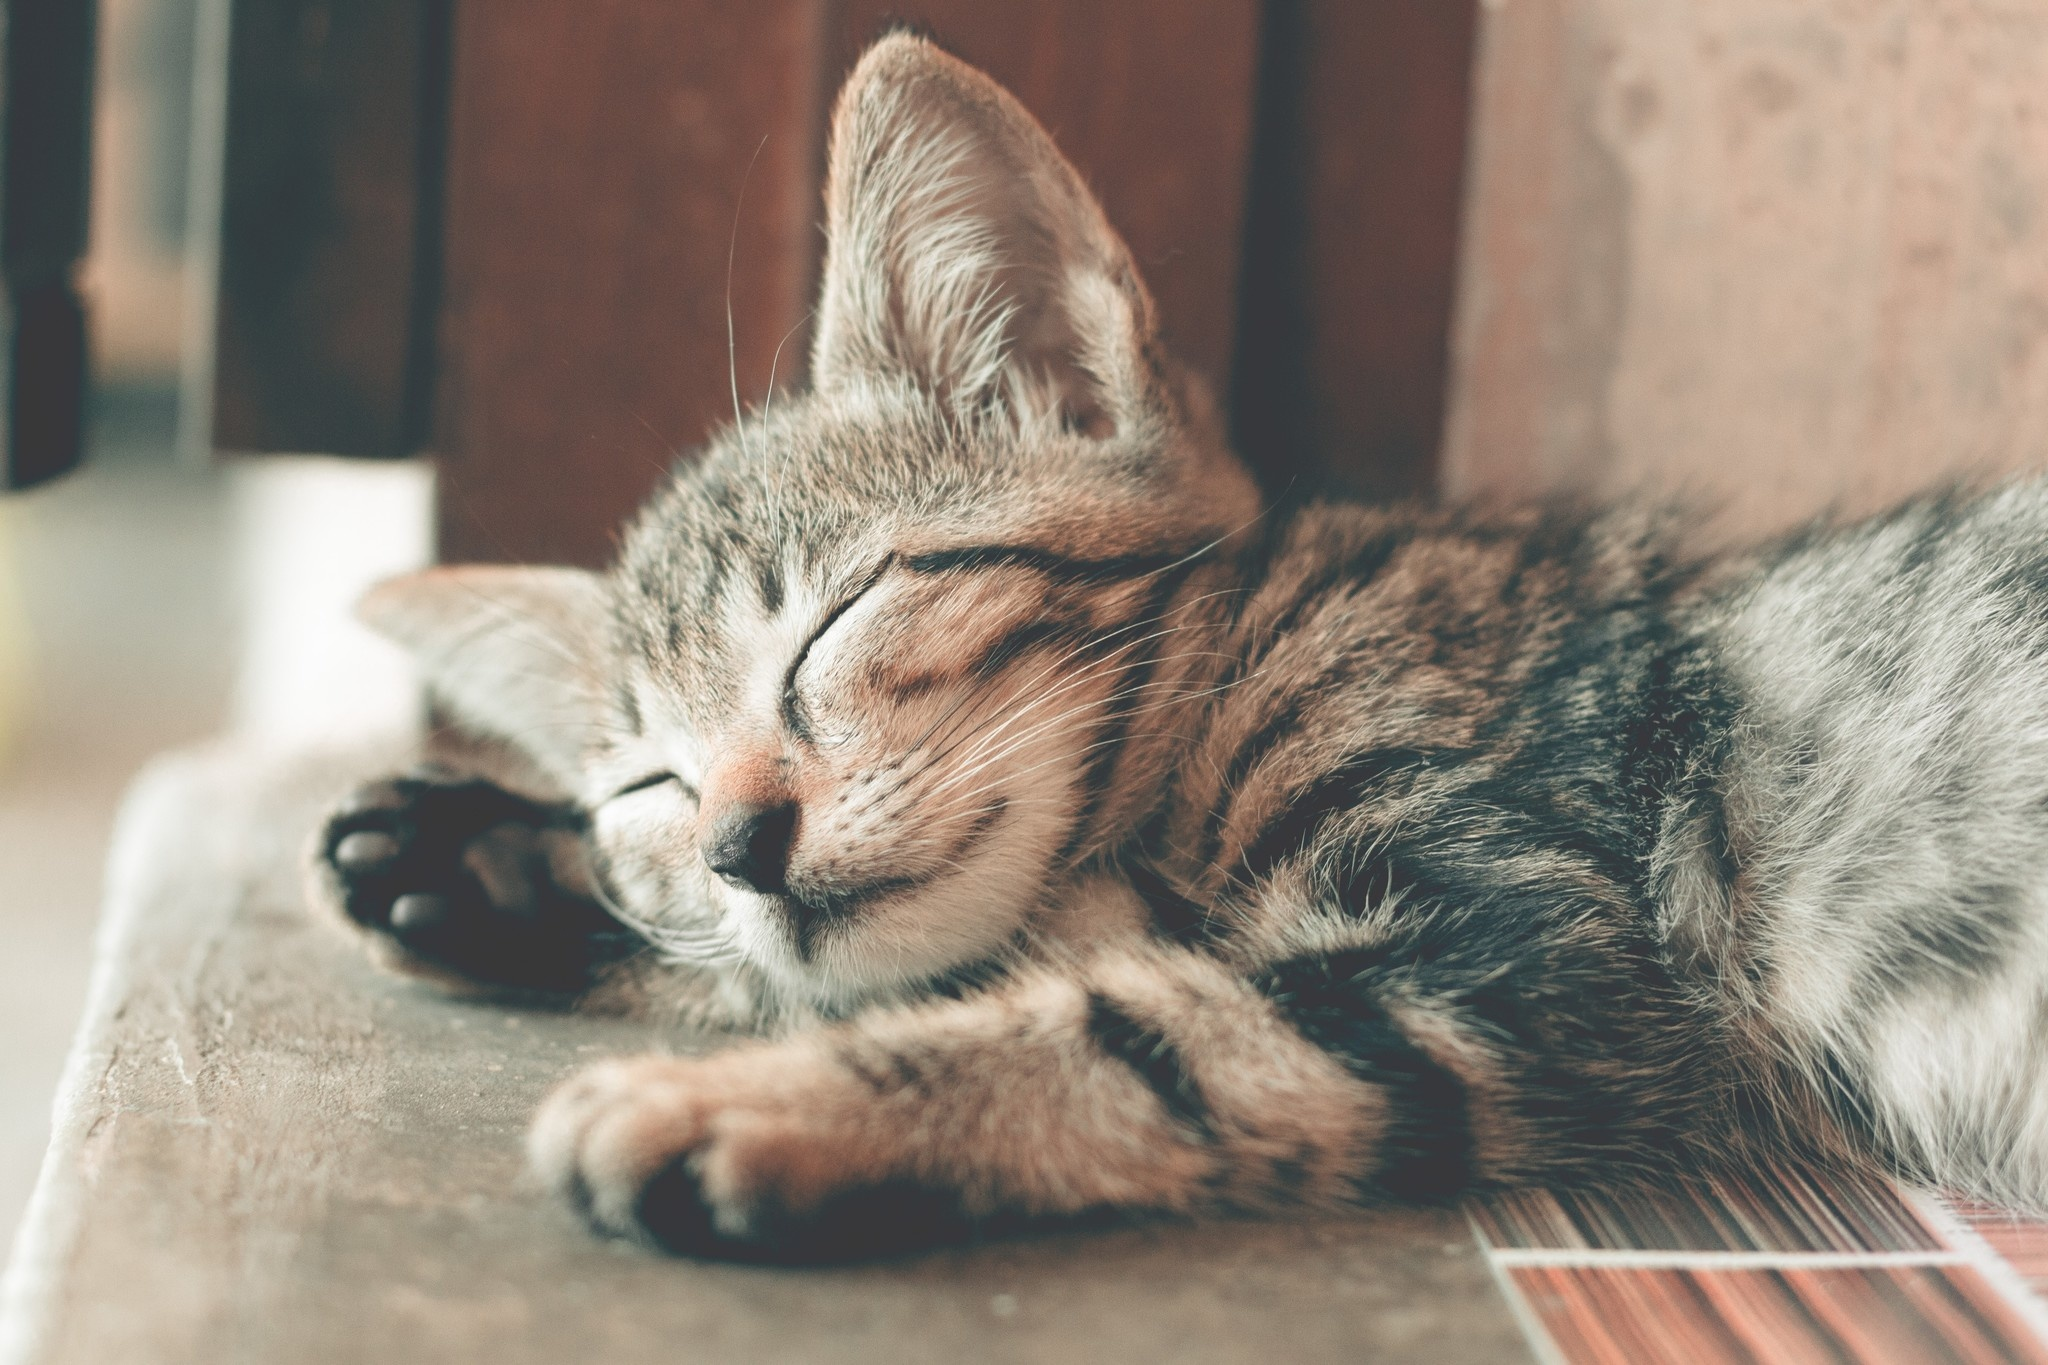 Tips for Keeping Your Cat Relaxed